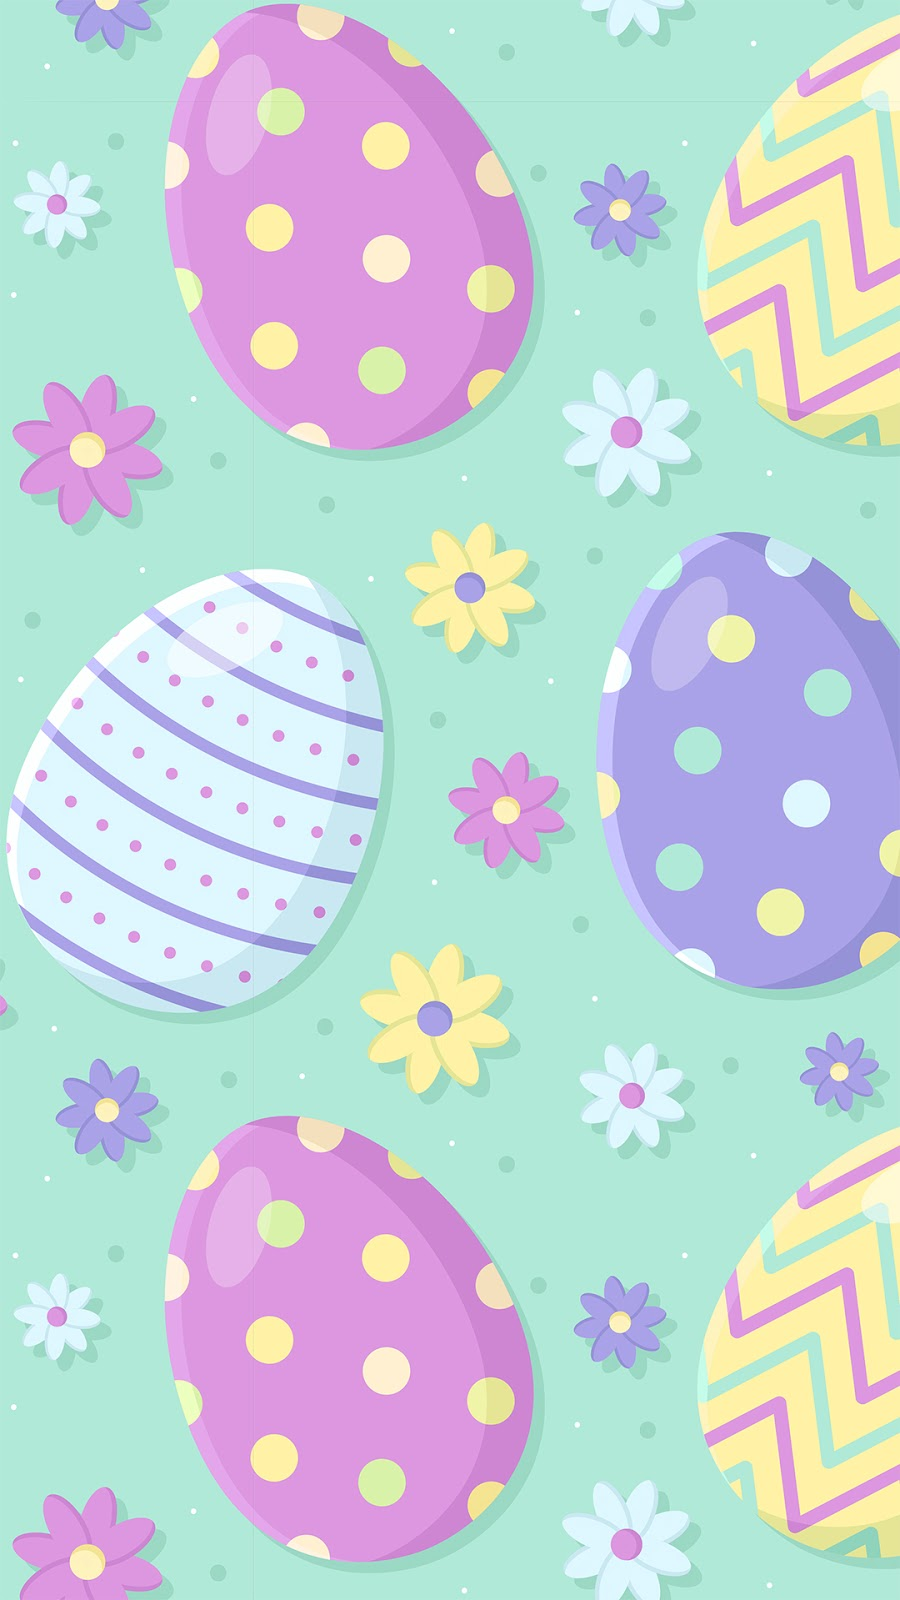 wallpaper hd easter egg 1080 x 1920 pixels